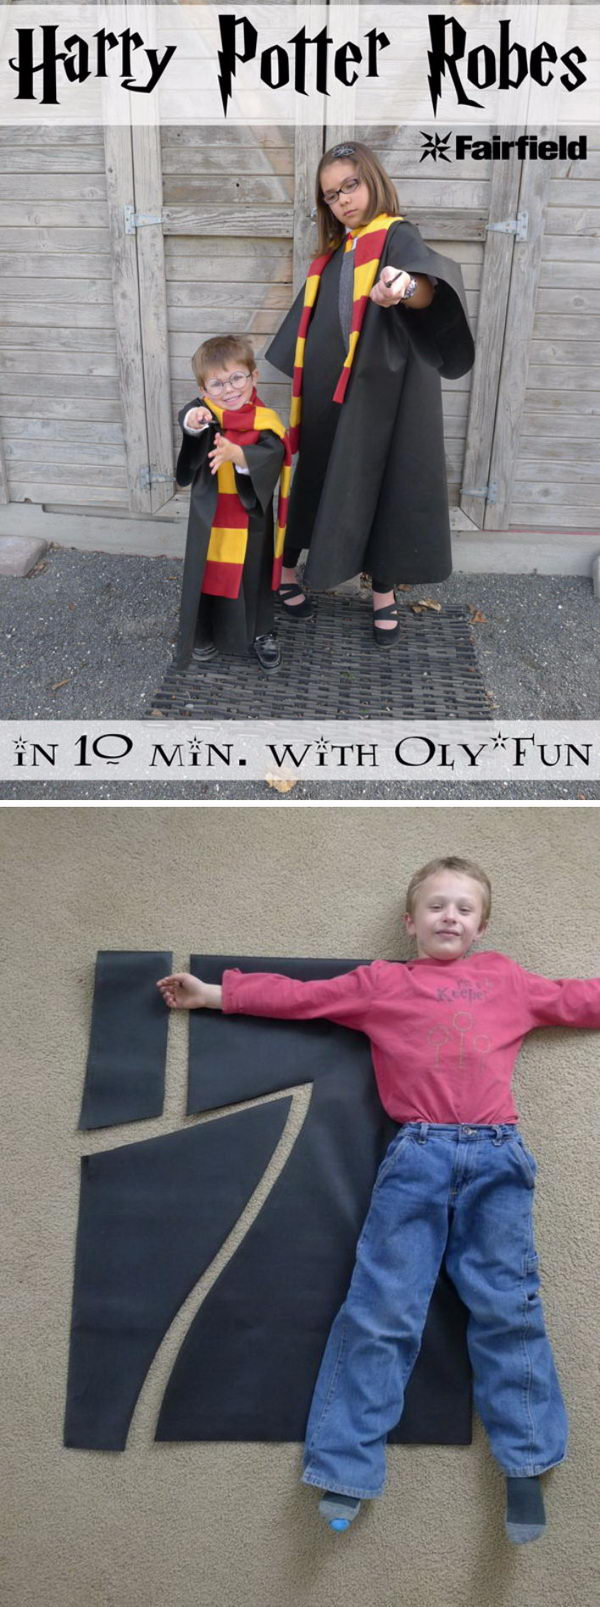 25 Harry Potter Costumes And Diy Ideas 2017